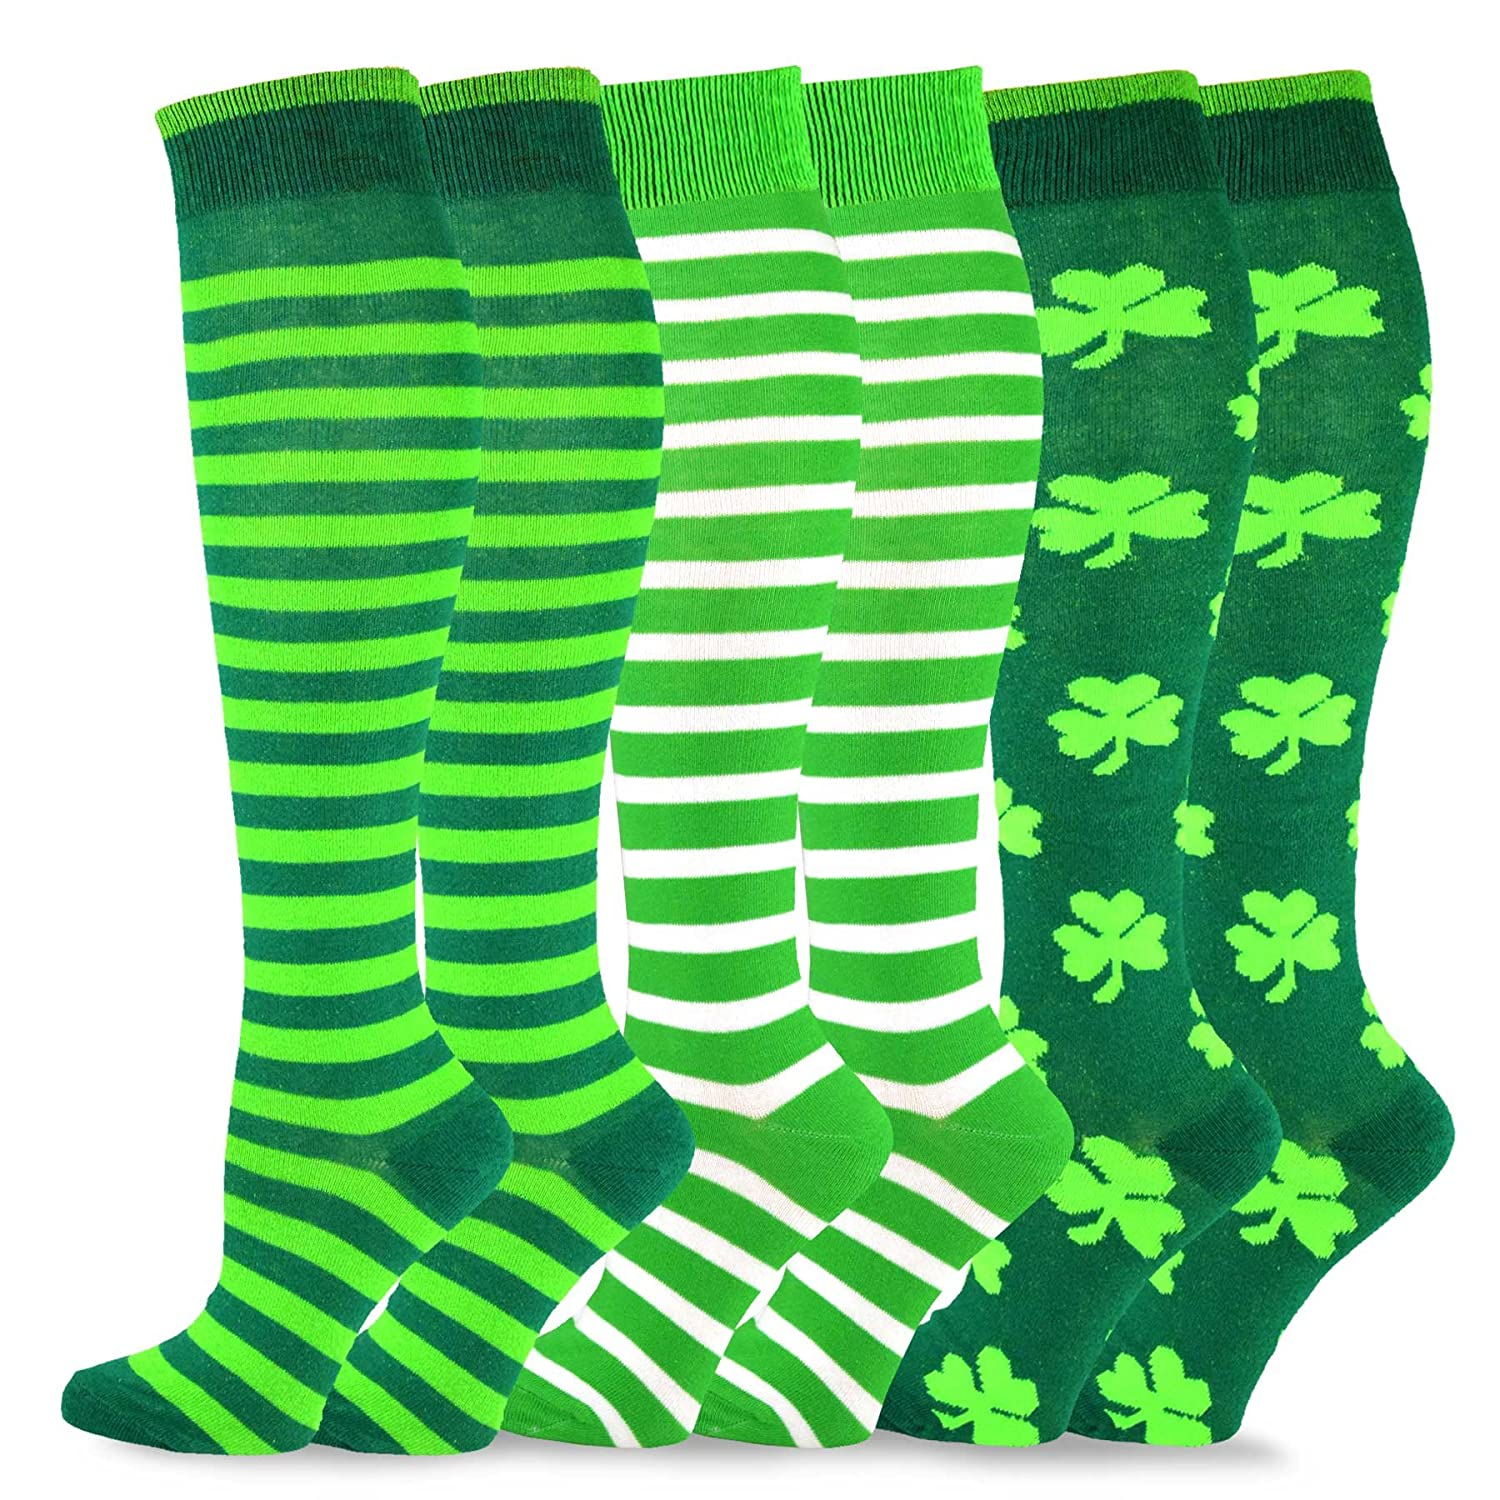 TeeHee St. Patricks Day Cotton Knee High Socks for Women 3-Pack Soxnet Inc